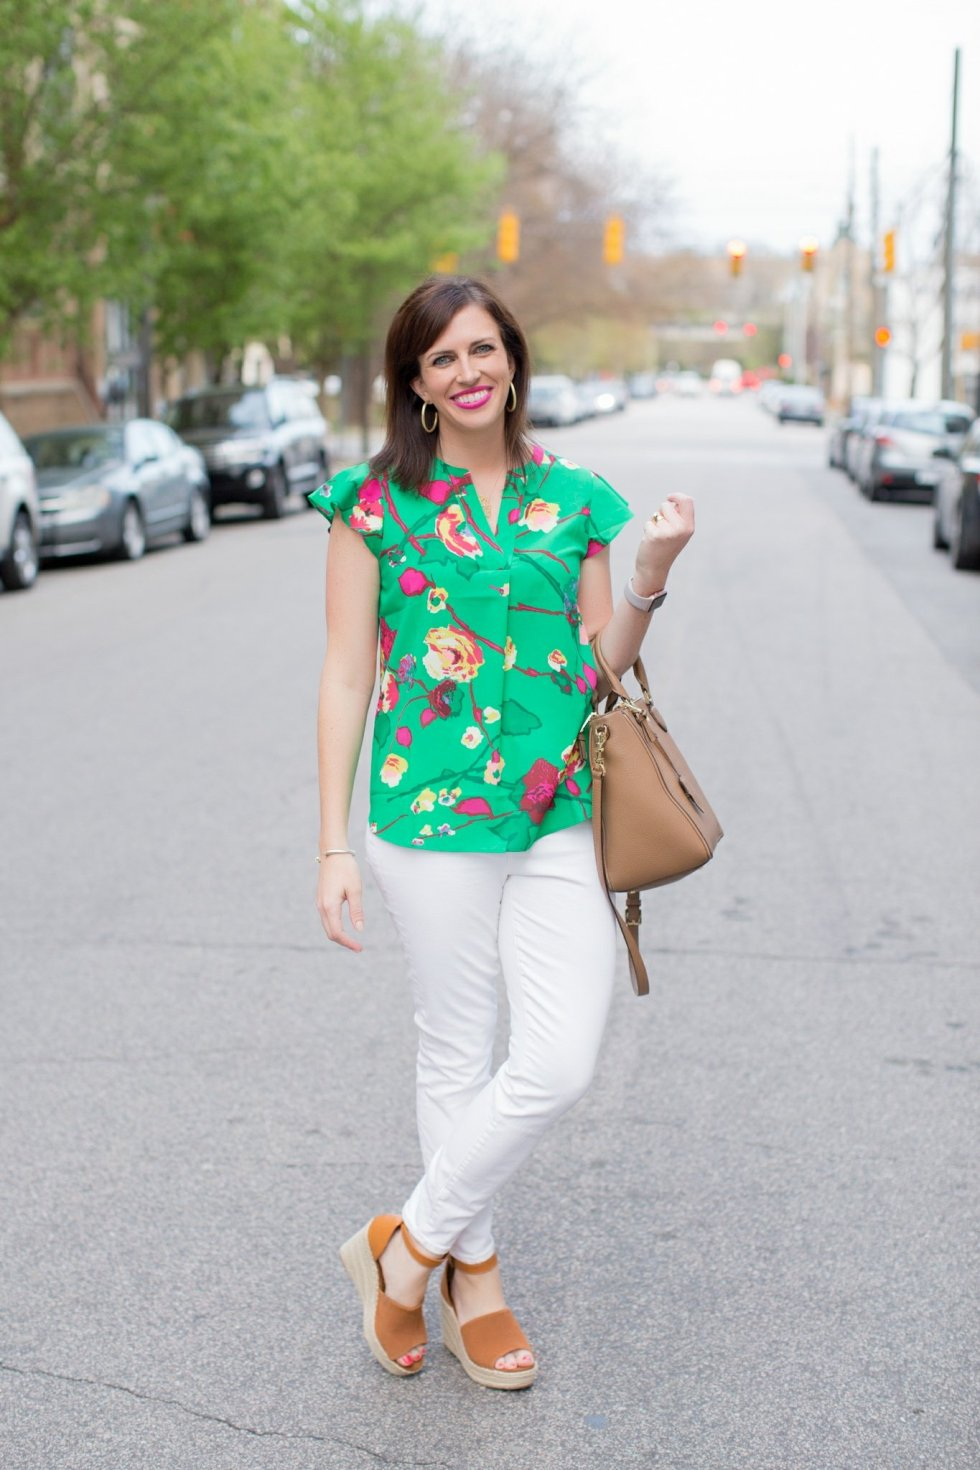 J.Crew Factory Floral Top featured by top US fashion blog I'm Fixin' To; Image of a woman wearing J. Crew Factory floral top, J. Crew high-waisted jeans, Steve Madden wedges, Tory Burch tote, Sheila Fajl hoops, David Yurman bangle and Moon & Lola Cheshire necklace.